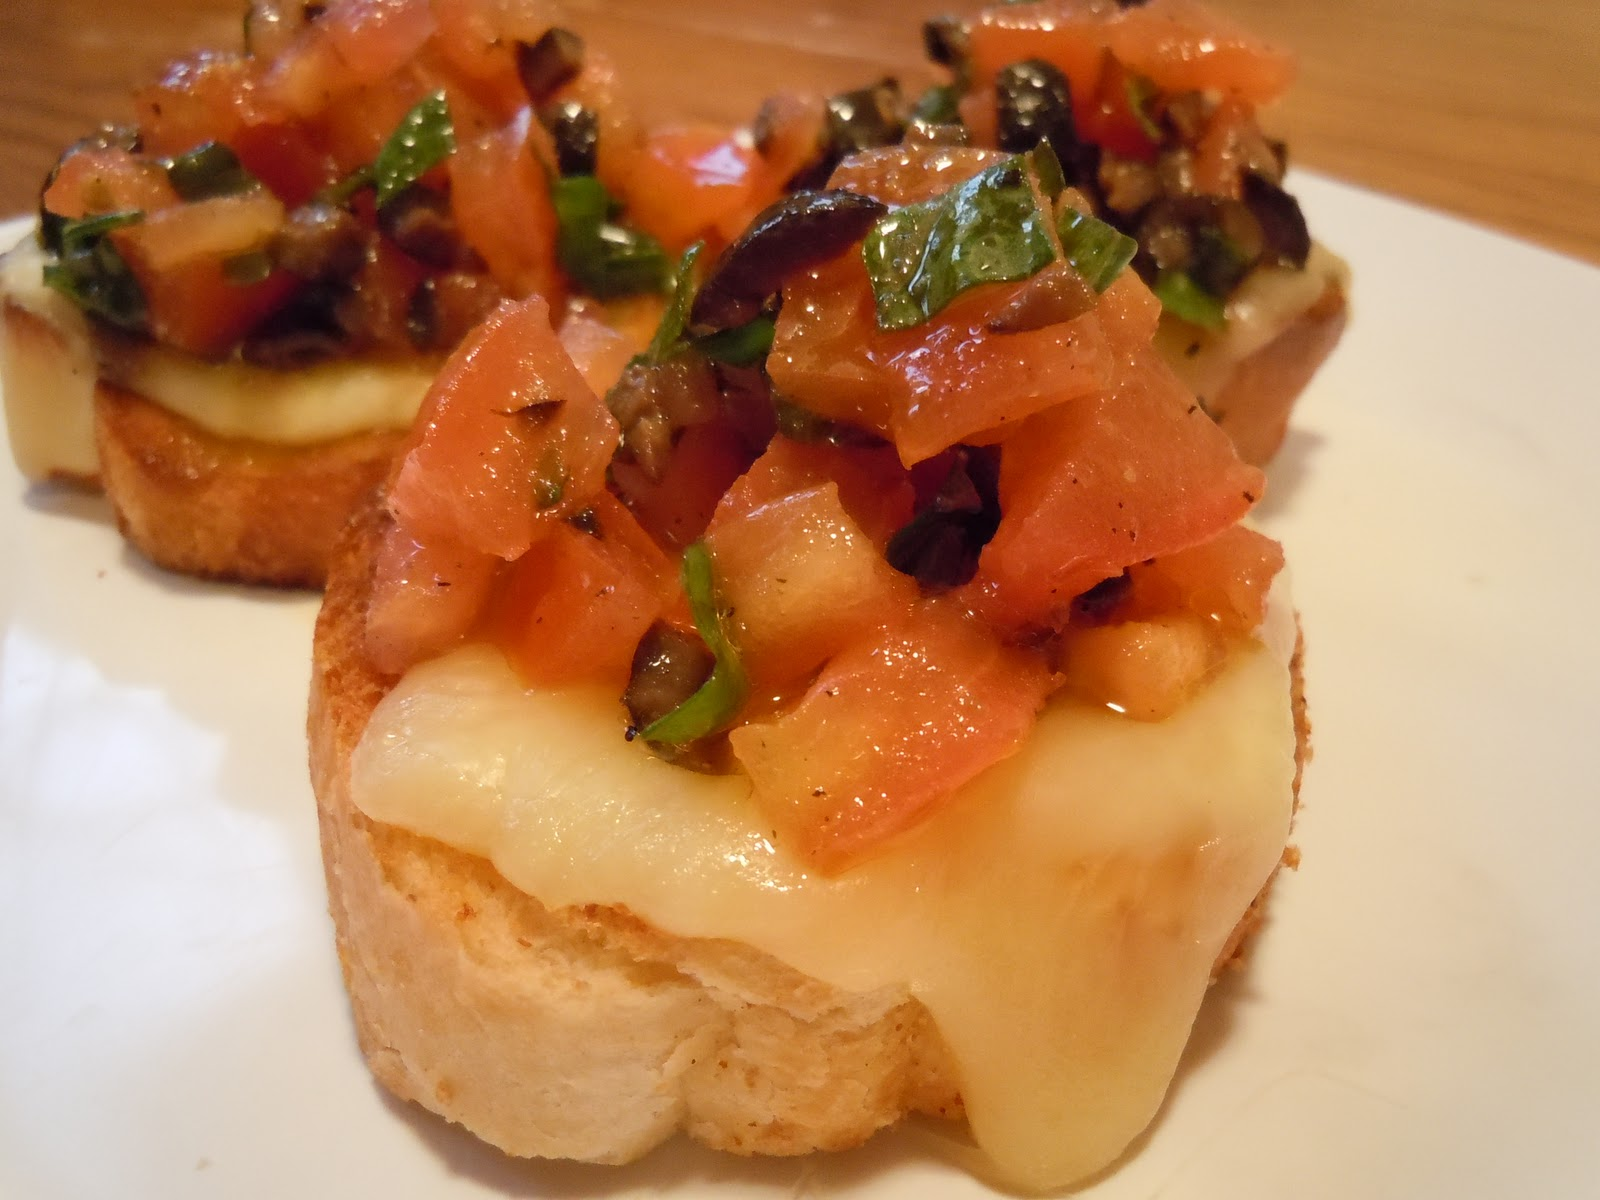 The Savvy Kitchen: Tomato, Olive & Basil Crostini